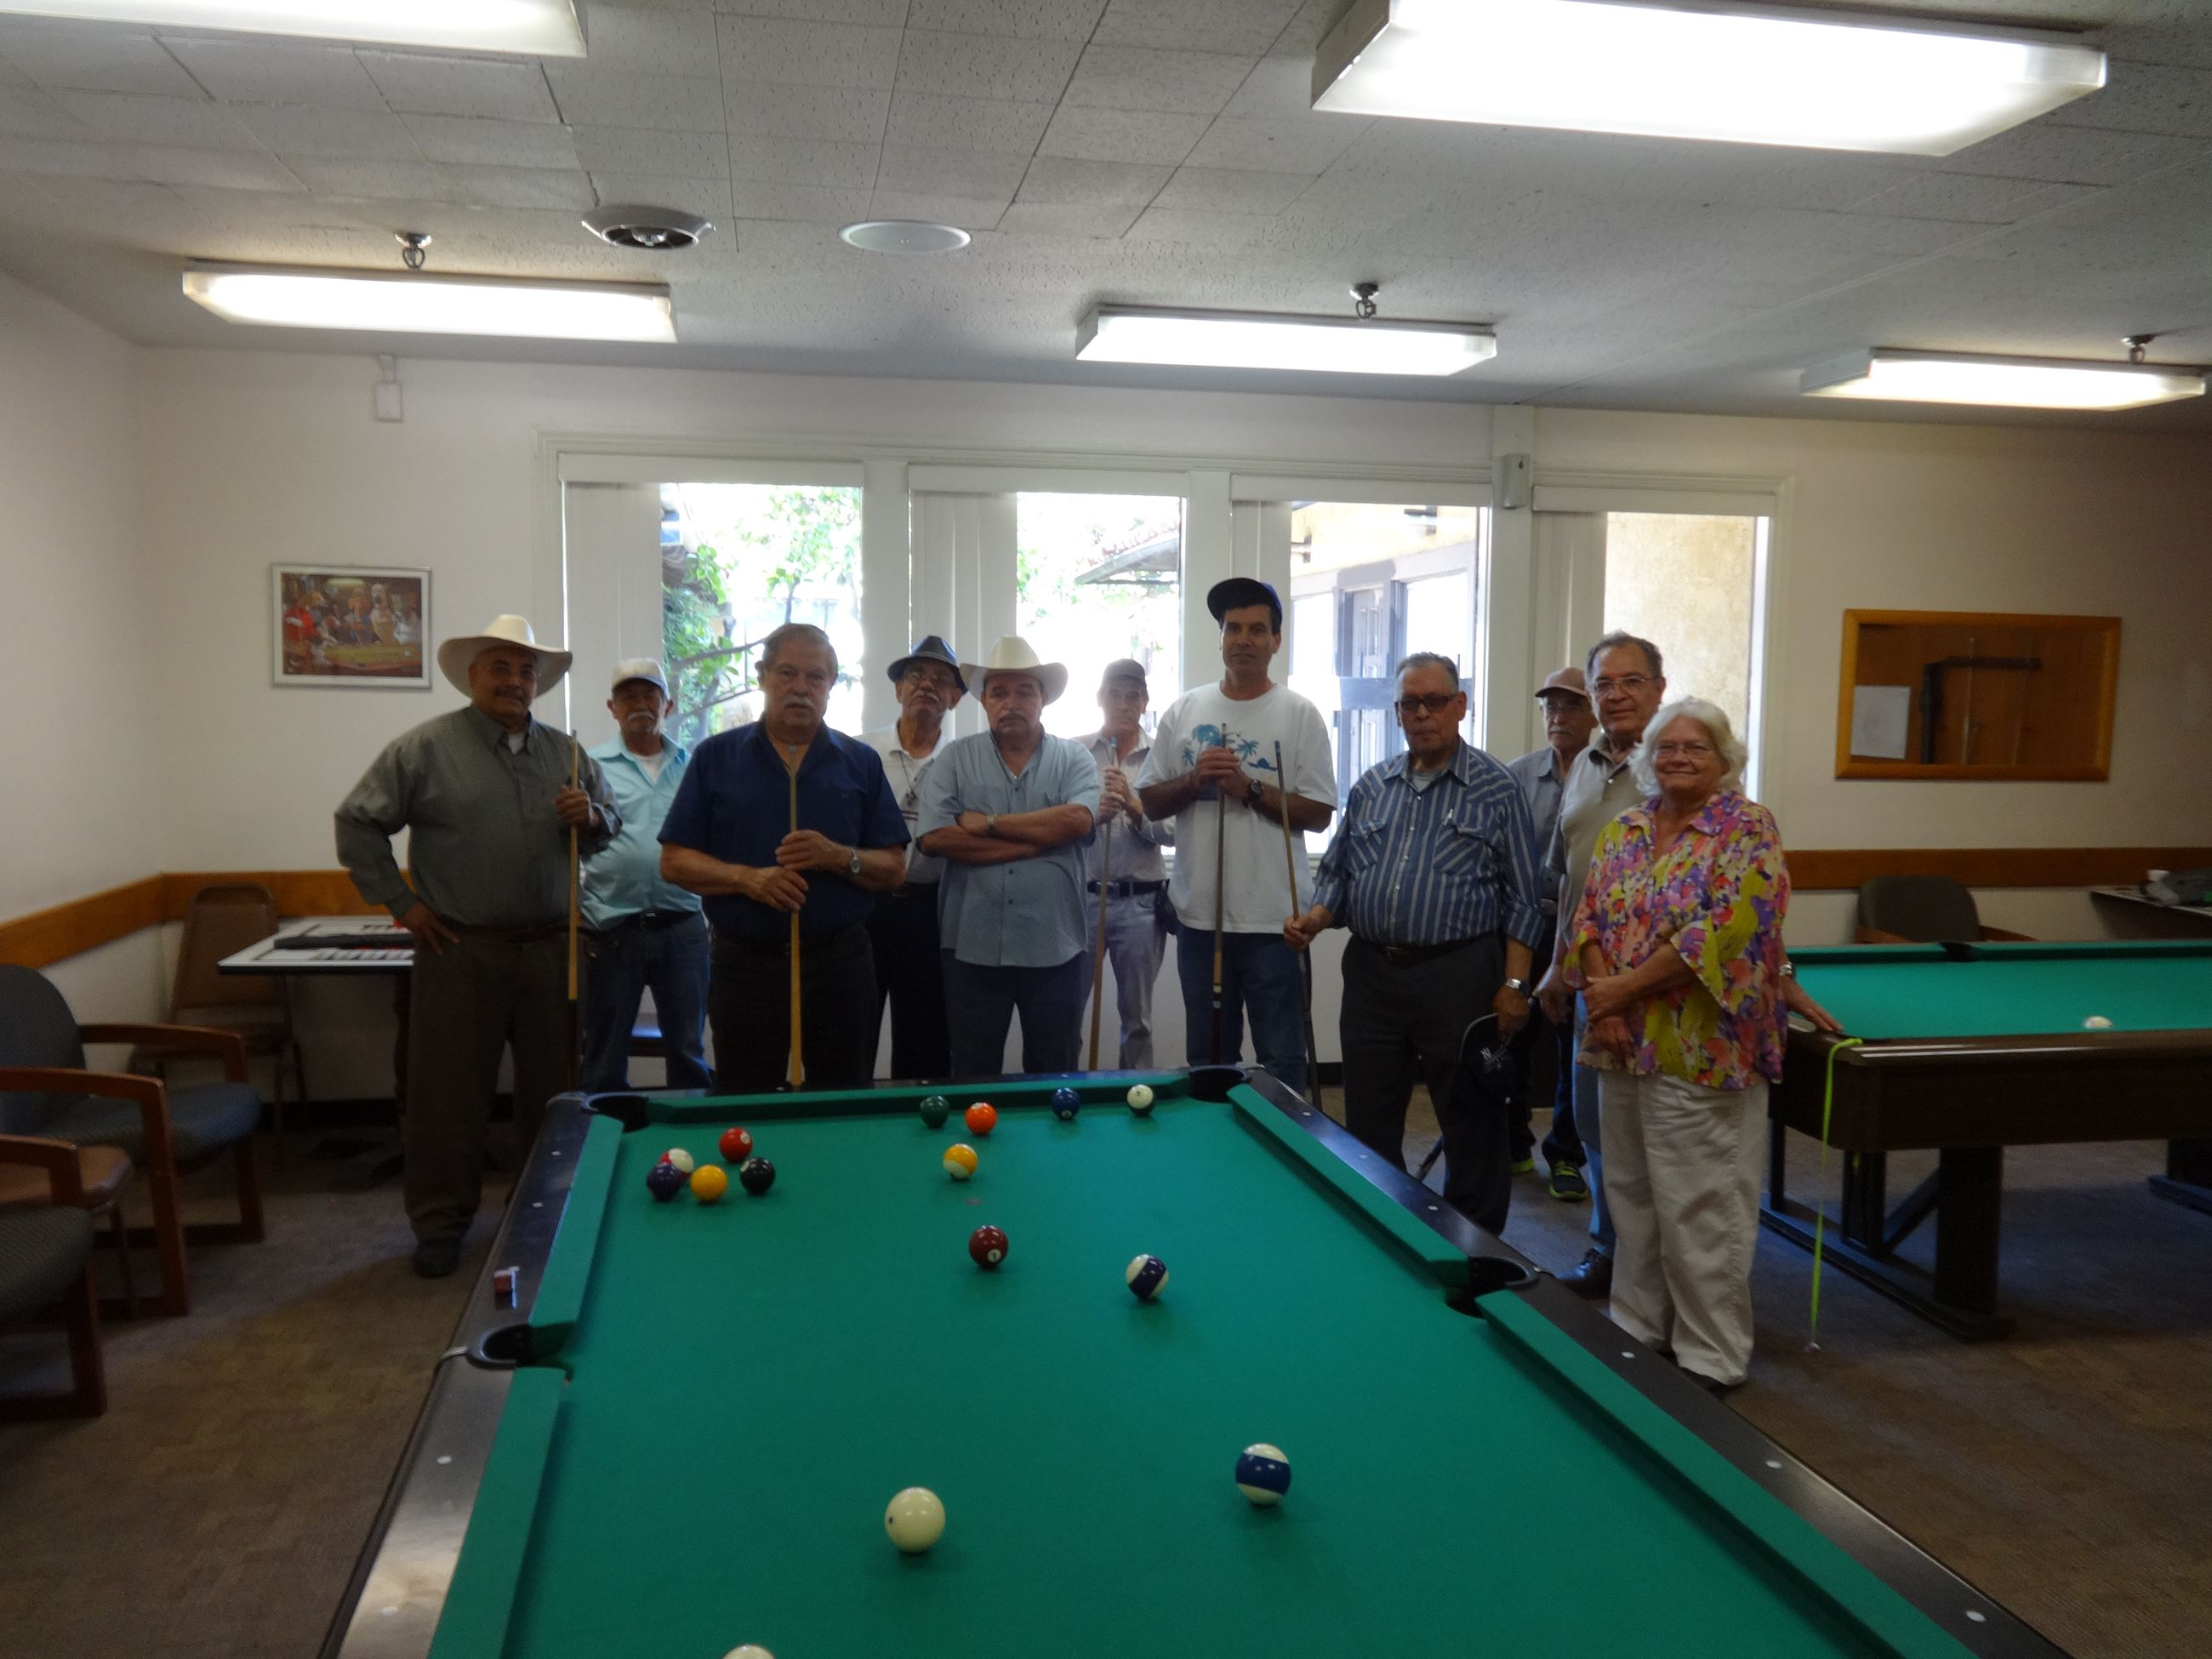 Group picture of older gentlemen by the billiards table